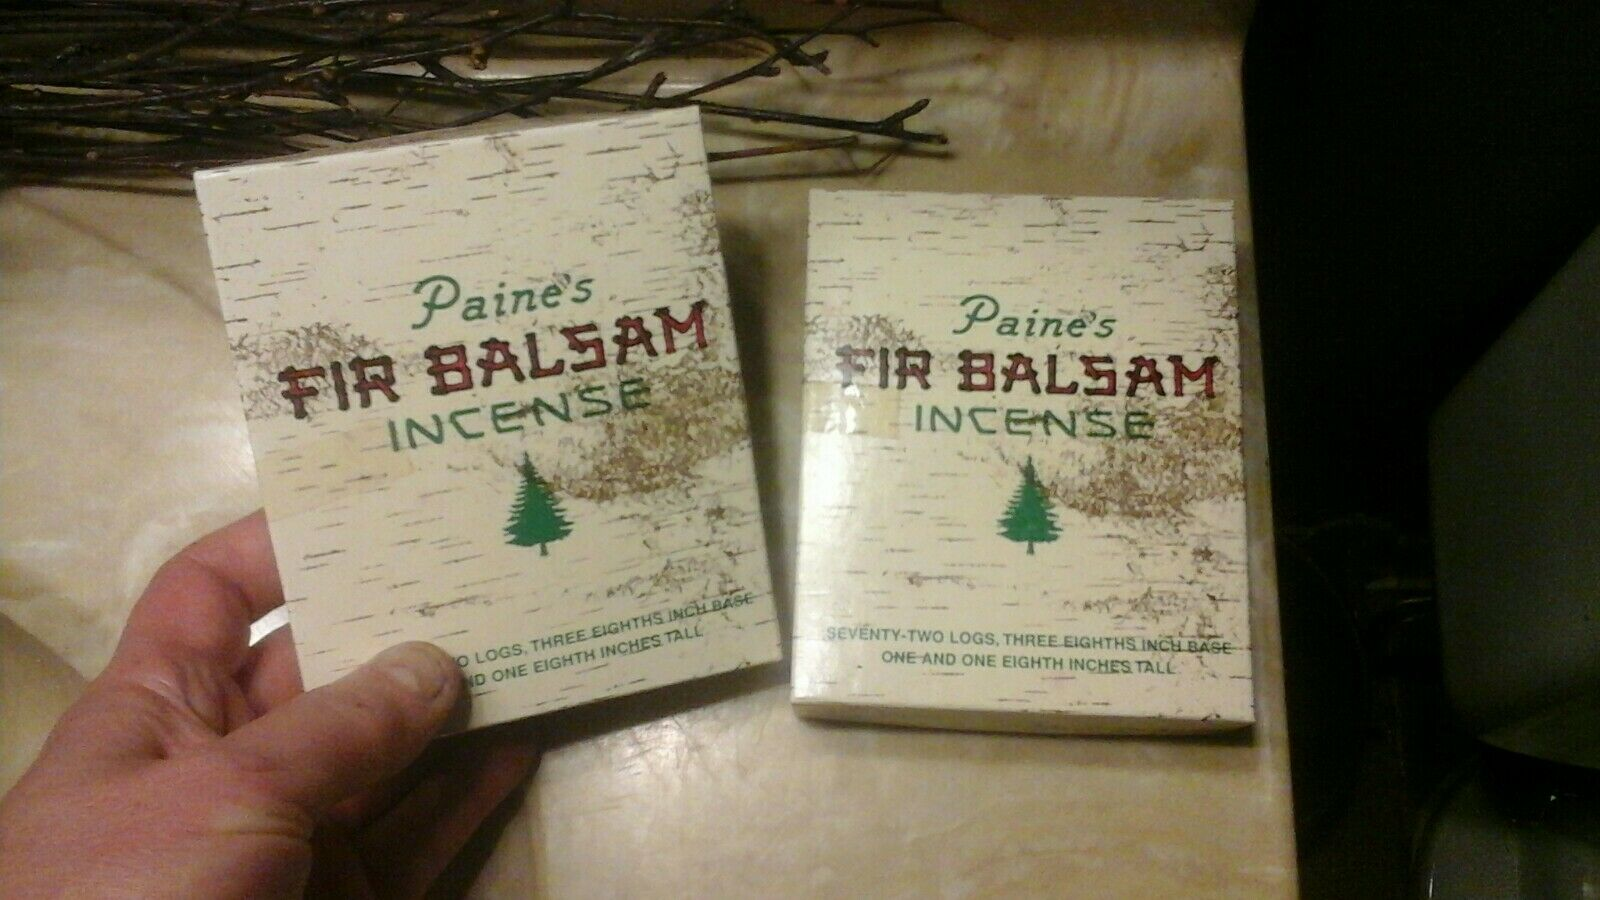 70 Sticks Refill Paines Balsam Fir Incense Two Inches Long Paine/'s